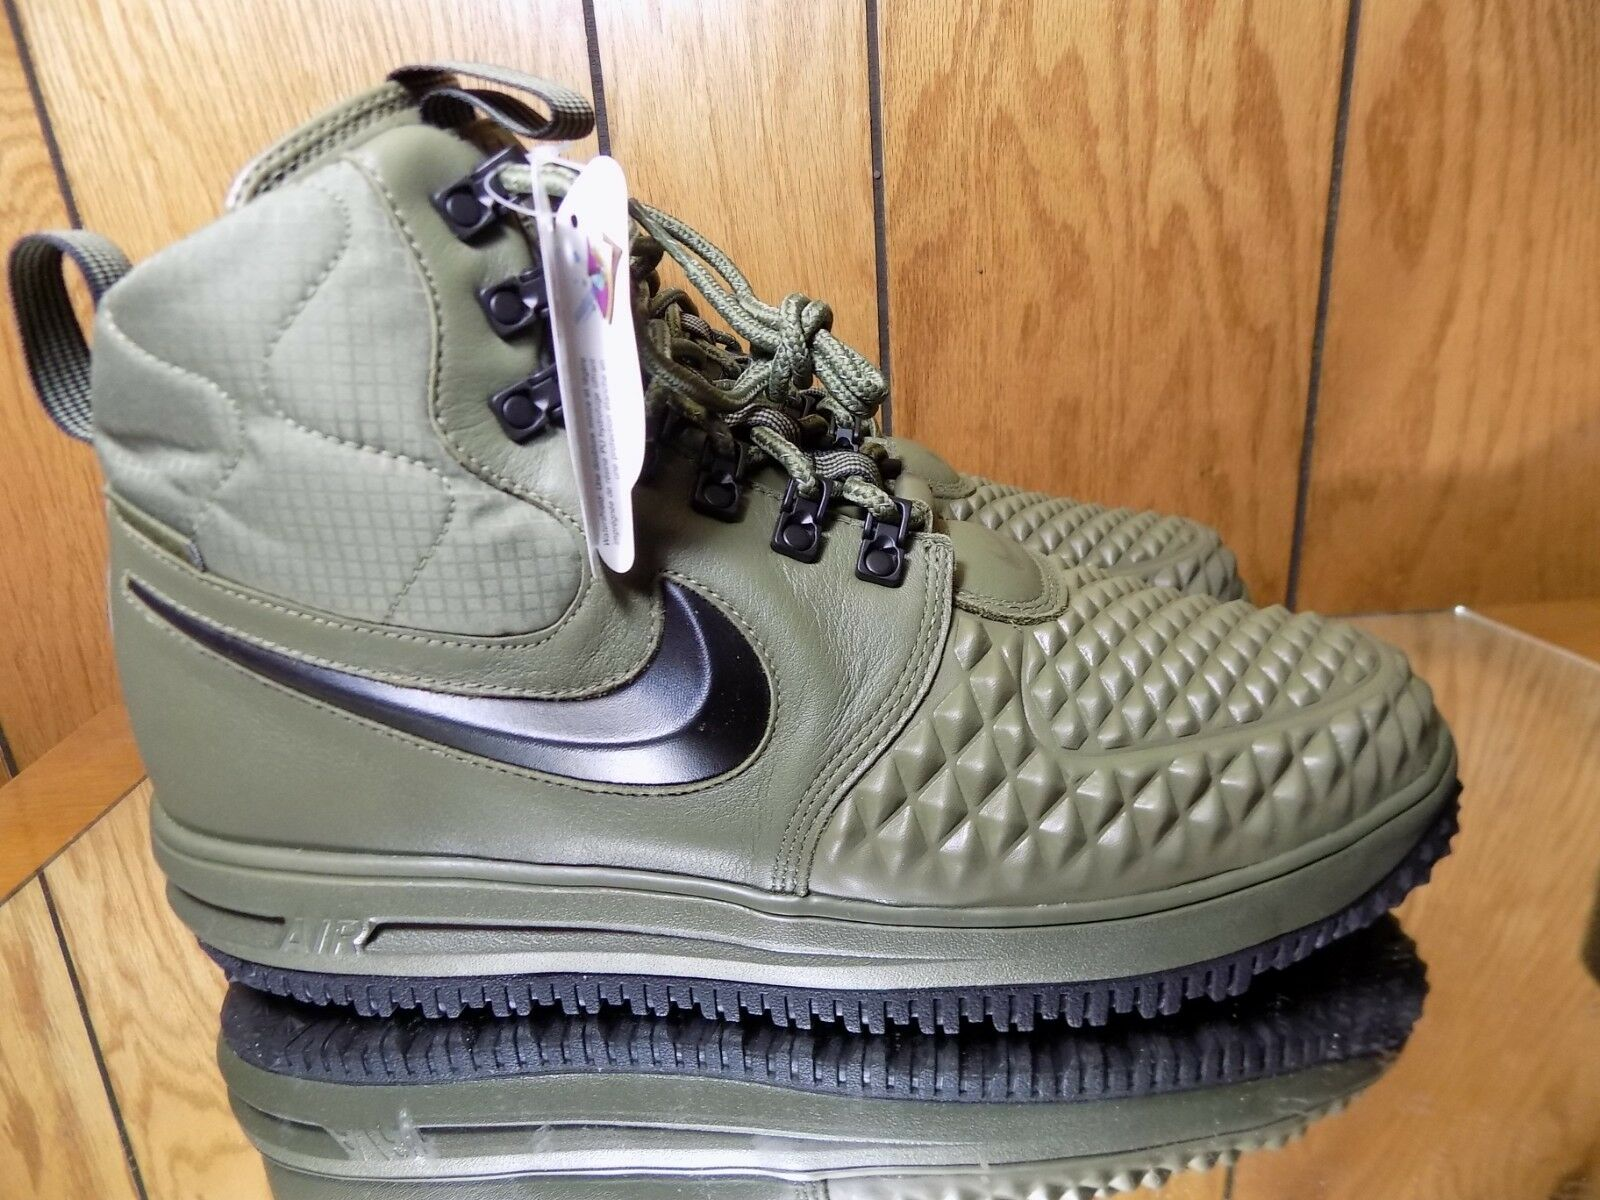 Nike Lunar Air Force 1 Duckboot 17 Size 9 Medium Olive Green LF1 916682-202